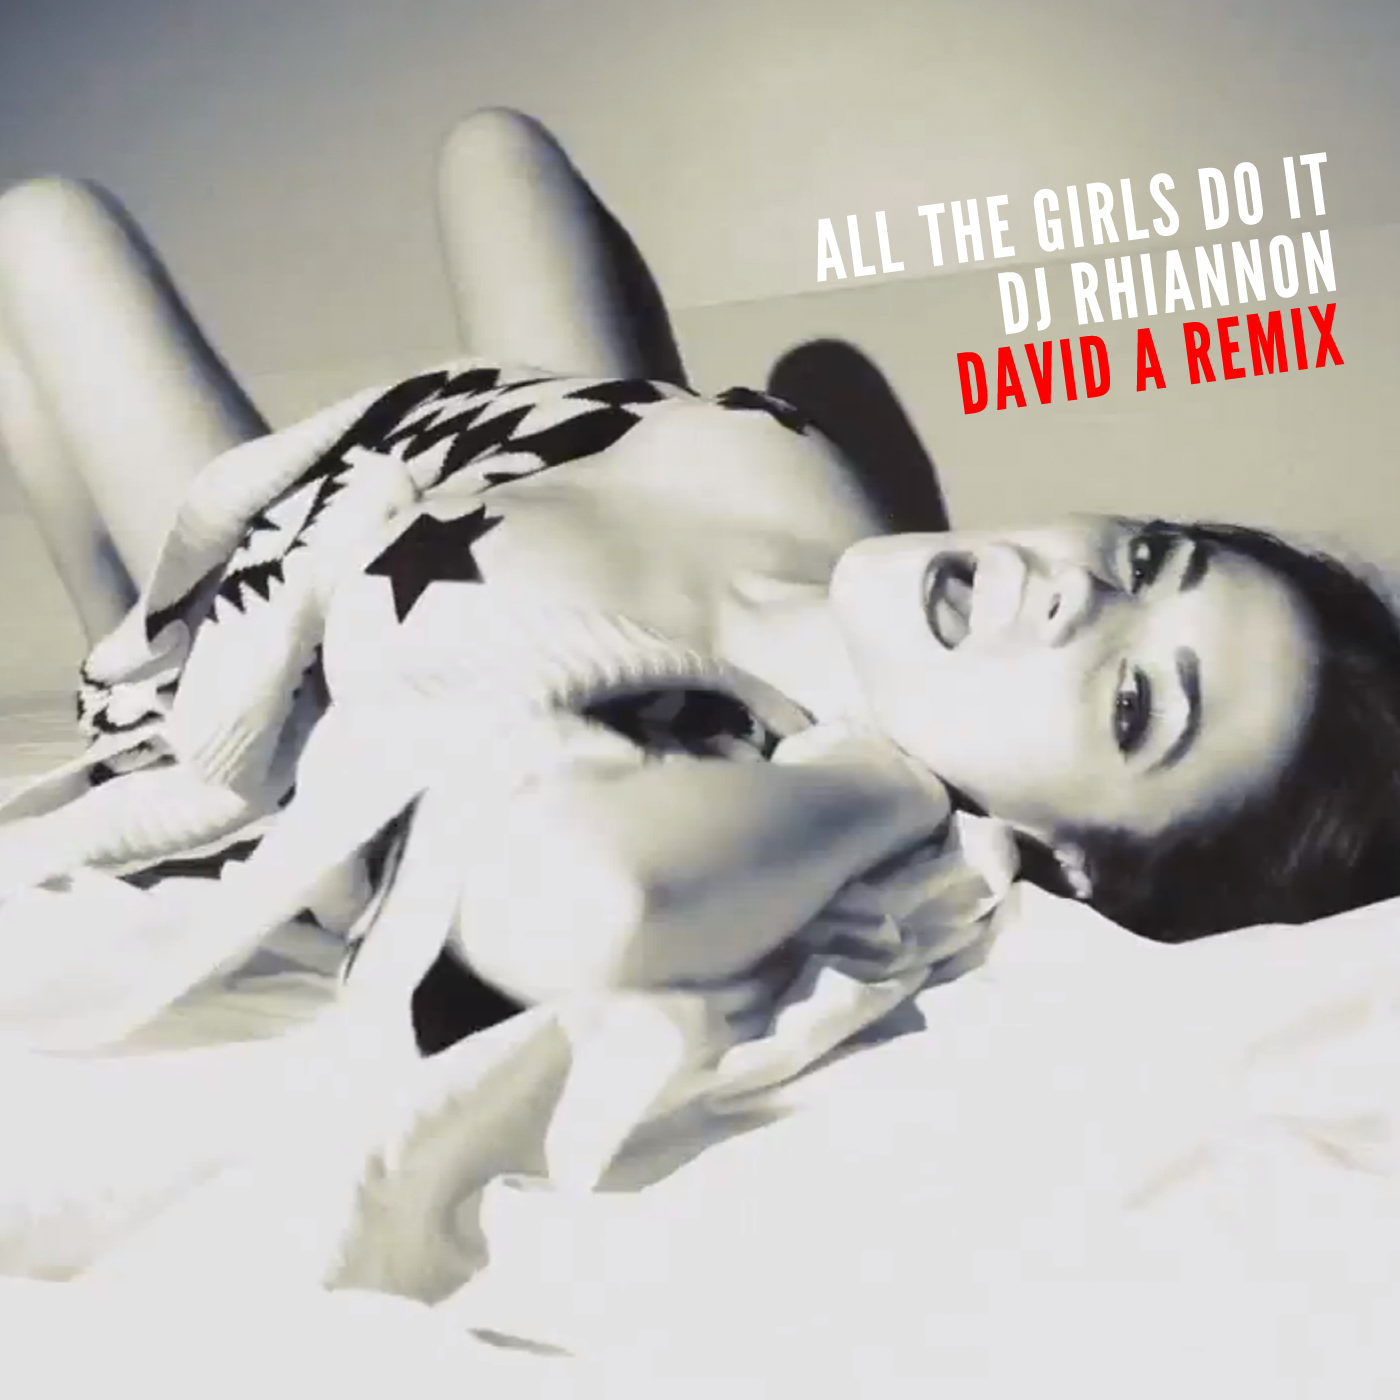 All The Girls Do It (David A Remix) - DJ Rhiannon - Artwork